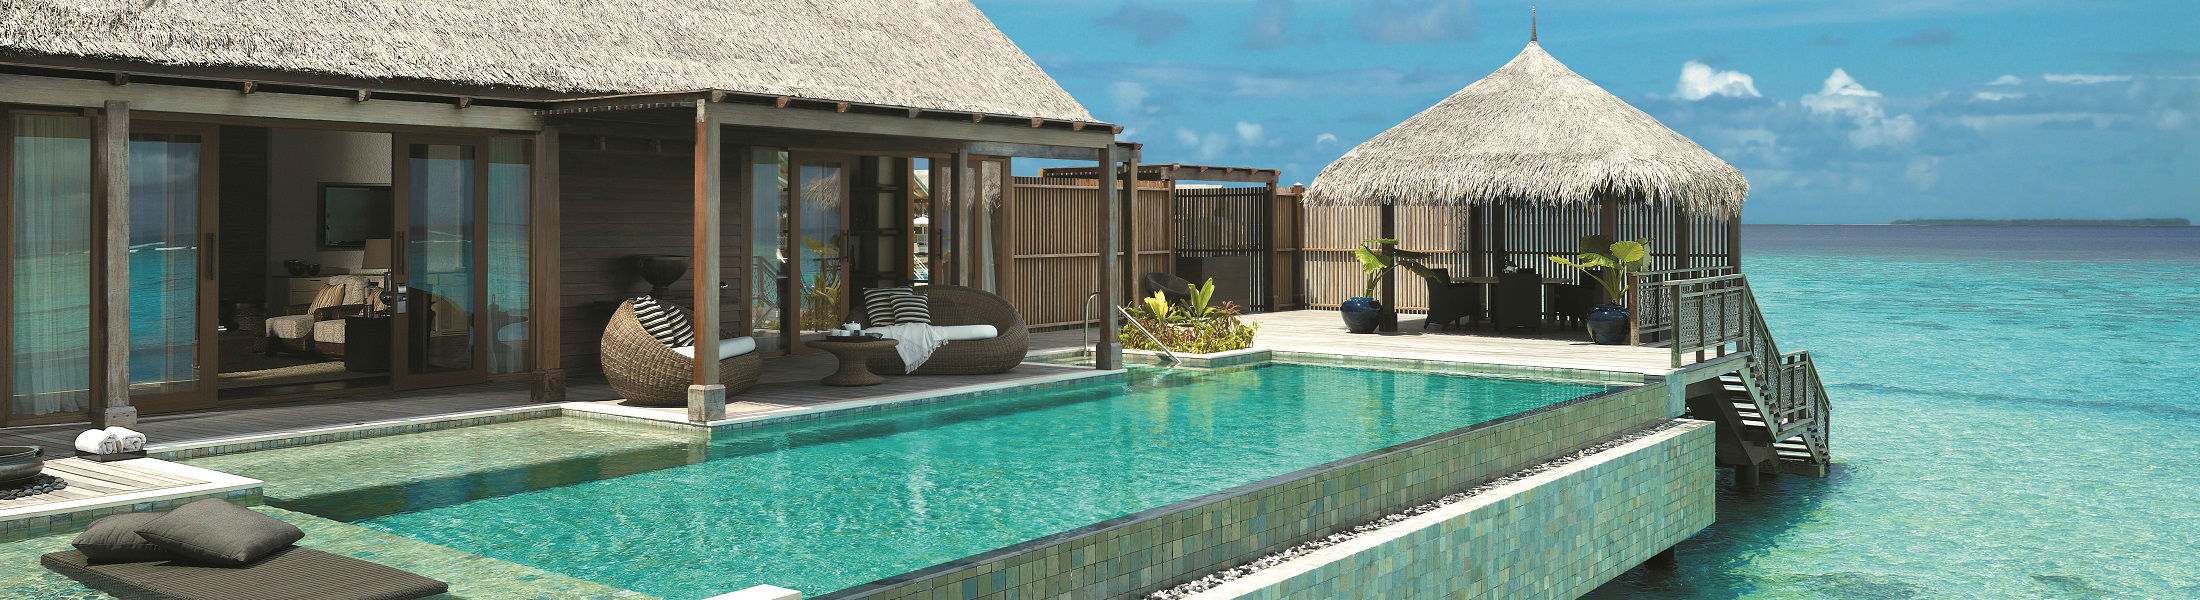 Villa Muthee deck and infinity pool at the Shangri La Villingili Maldives